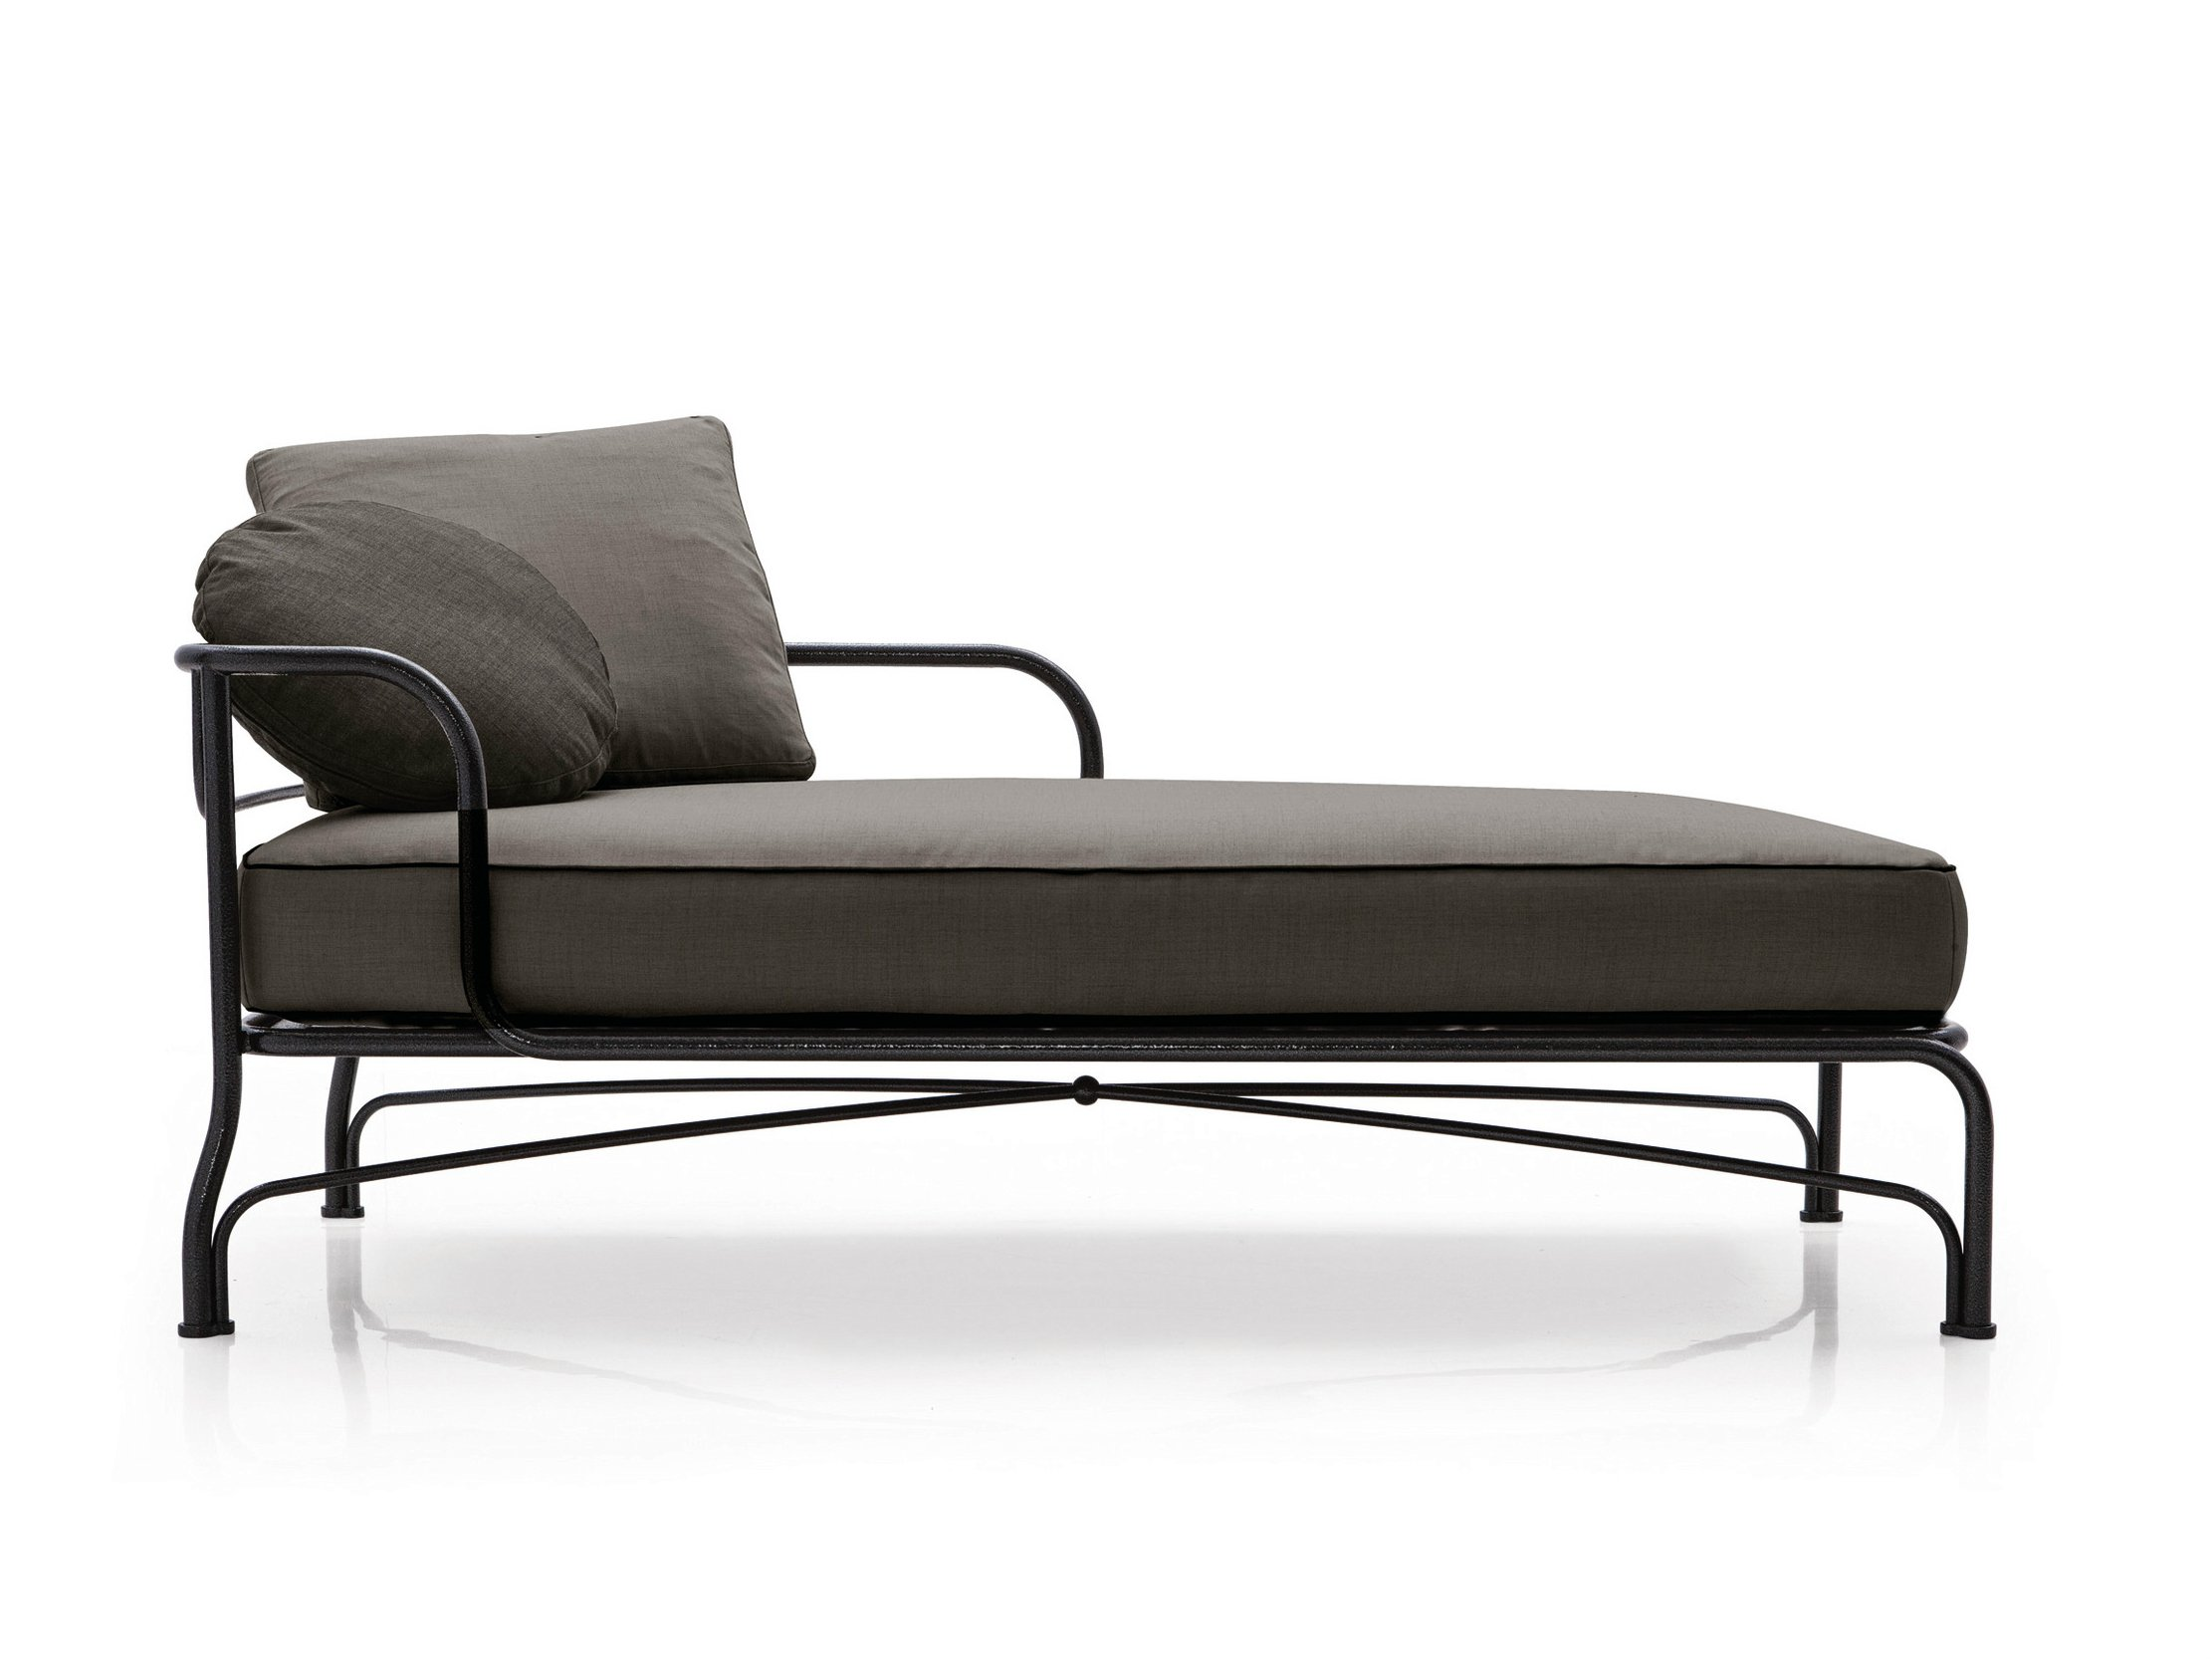 Le parc chaise longue by minotti design minotti studio for Chaise longue design piscine